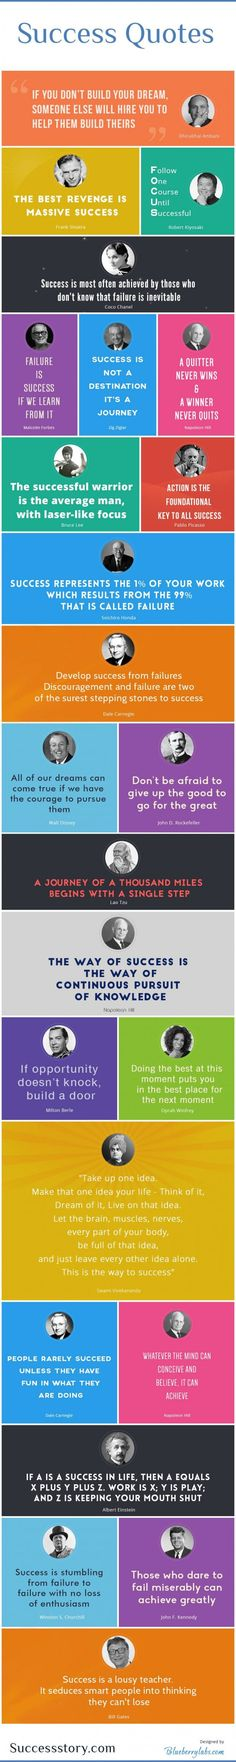 Success Quotes [by Successstory -- via #tipsographic]. More at tipsographic.com